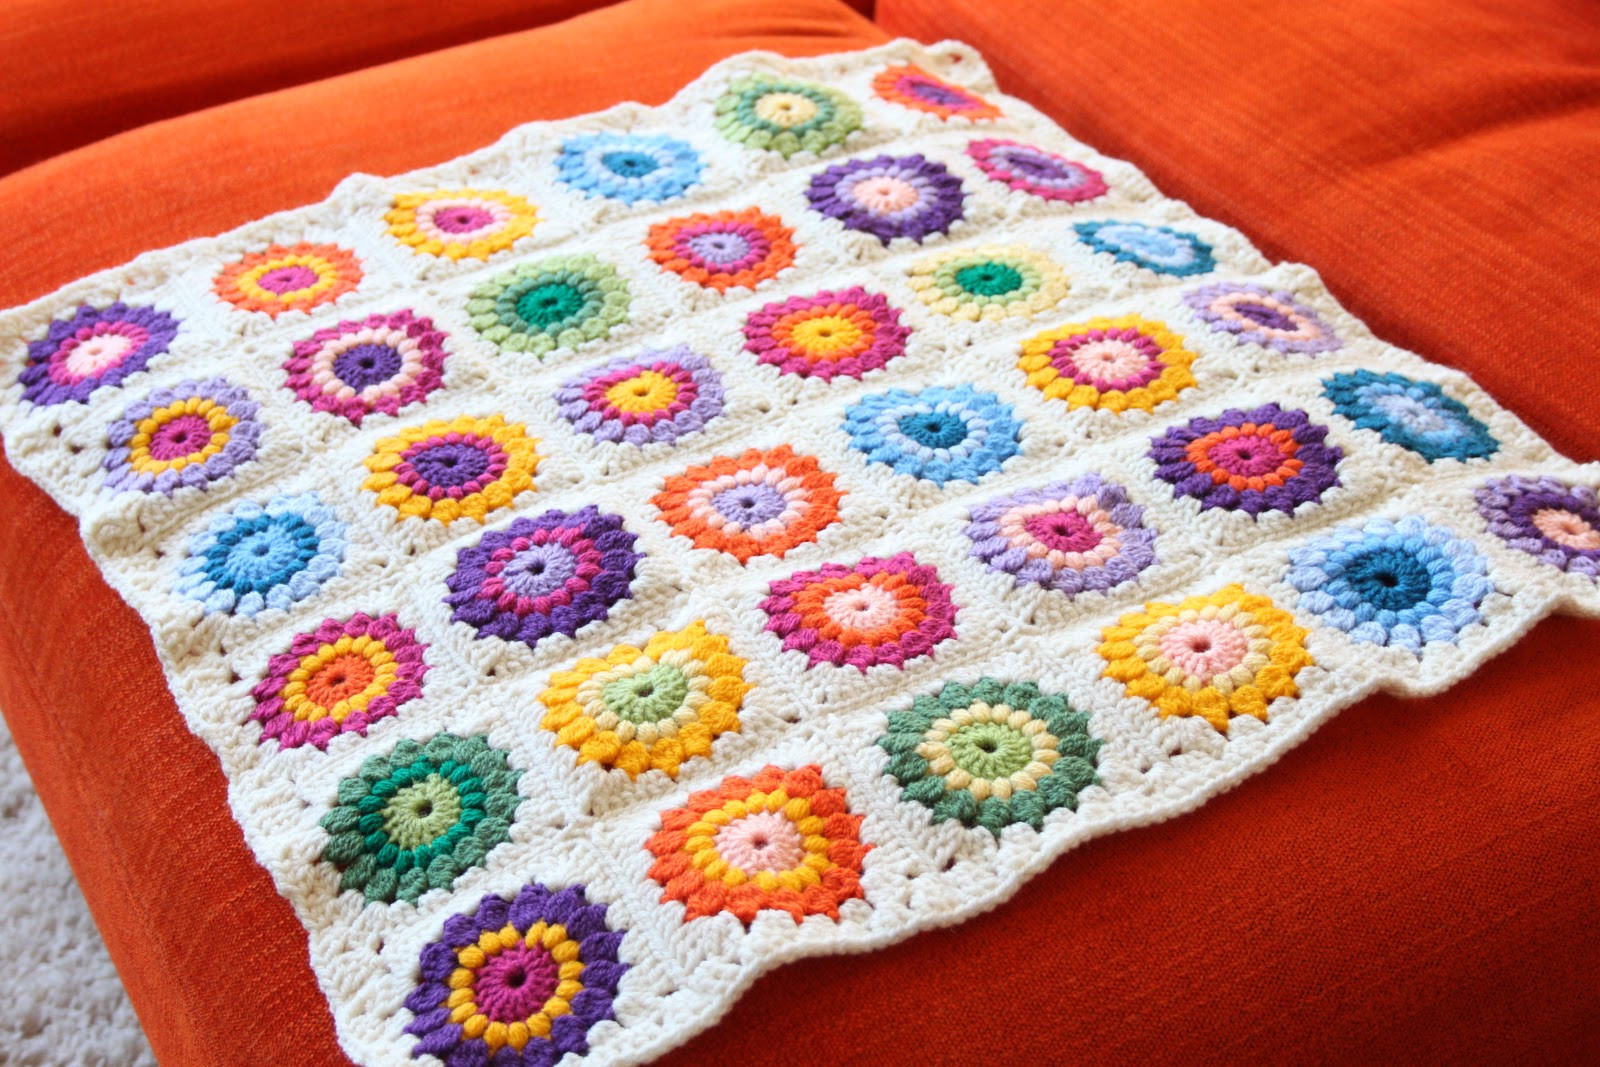 Crochet Granny Square Blanket Pattern Awesome Nittybits Sunburst Granny Square Blanket Tutorial Of Brilliant 48 Ideas Crochet Granny Square Blanket Pattern